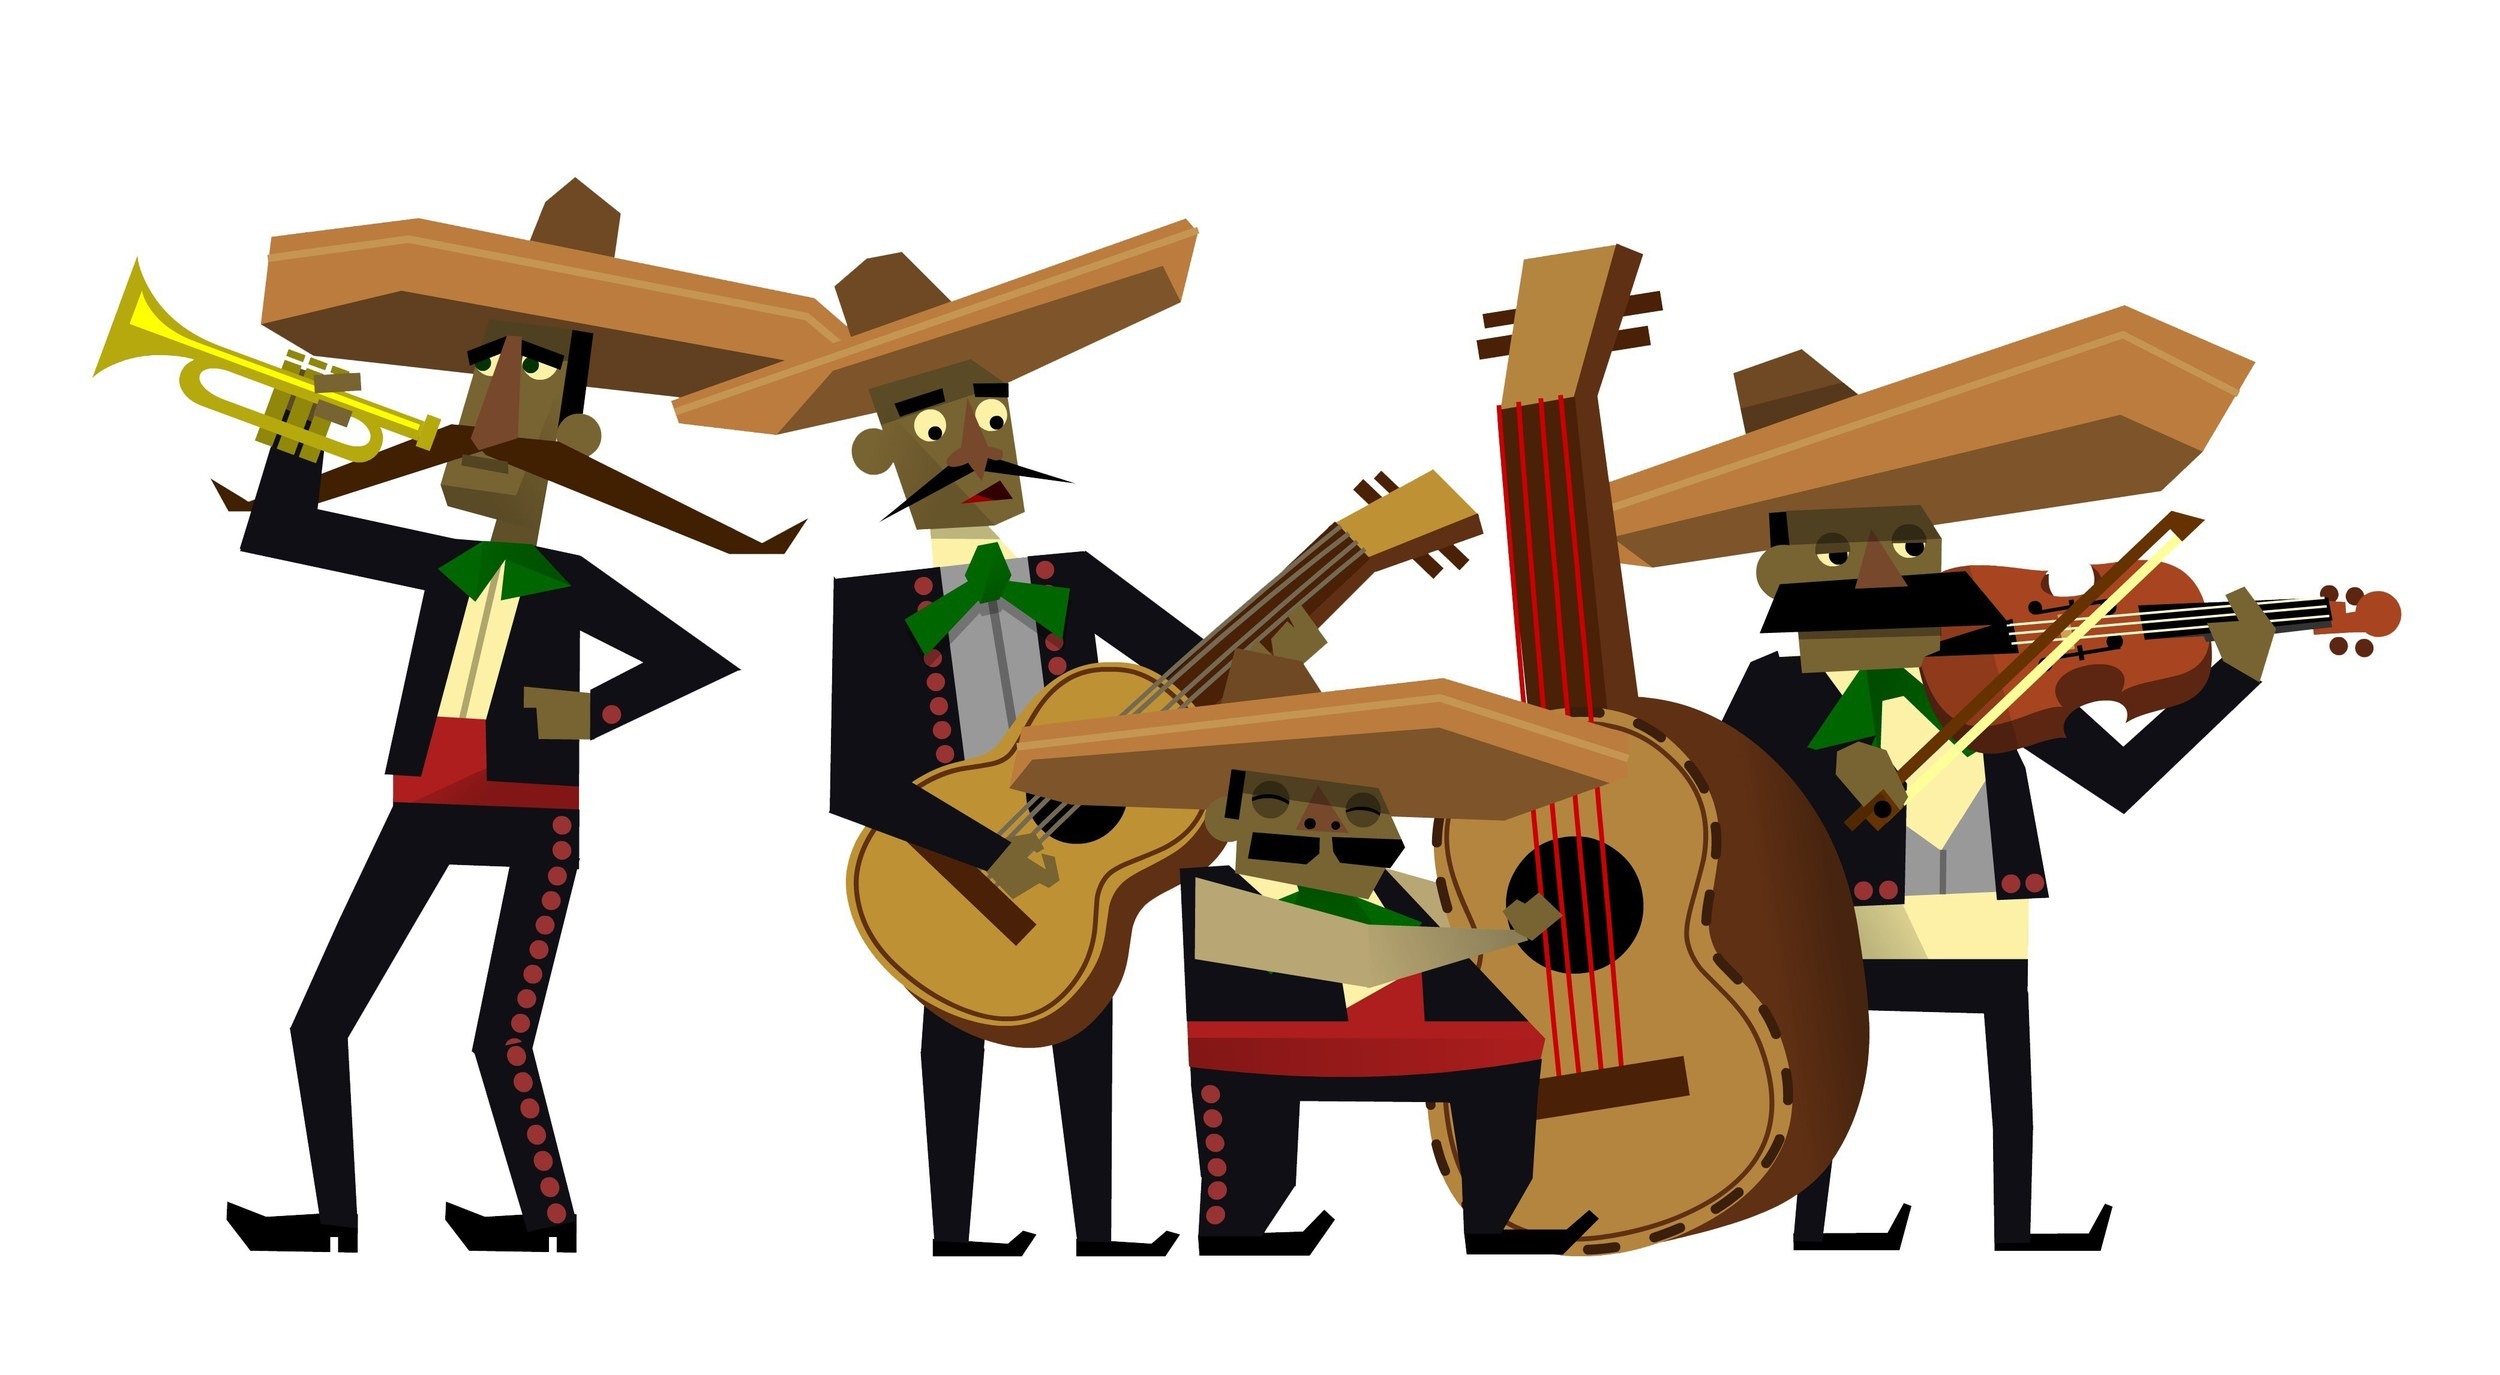 Guacamelee-official-mariachi-artwork-drinkbox-studios